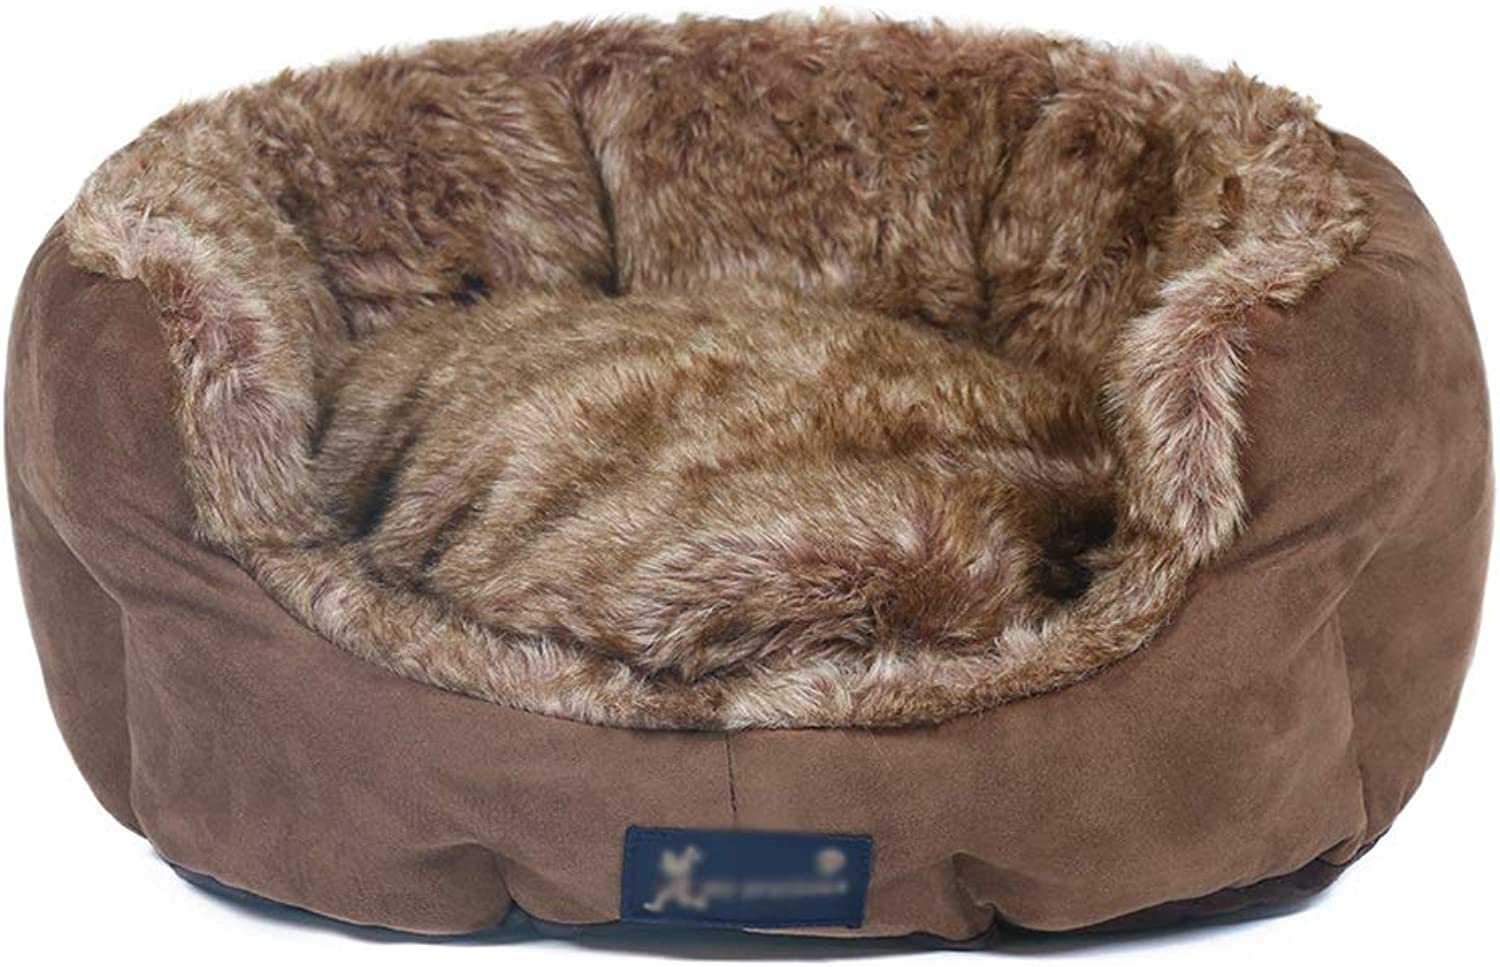 Pet house Sofa nest Cat nest kennel Teddy Bomei Dog bed Small dog Puppies Sofa cushion winter